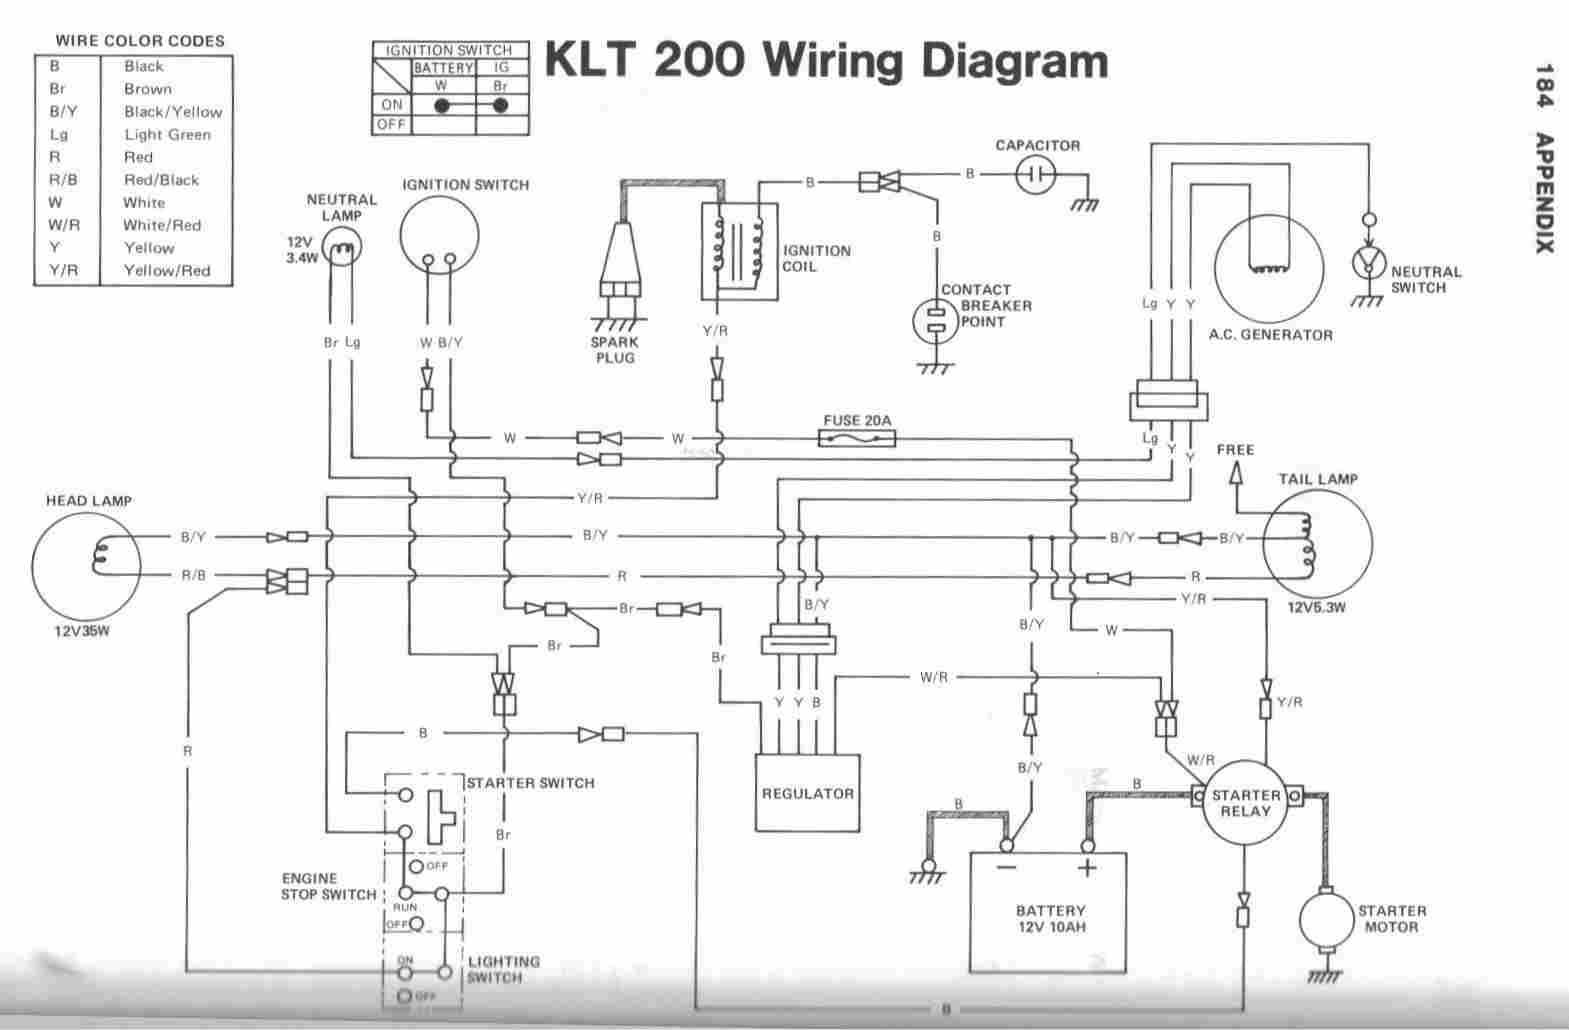 Residential Electrical Wiring Diagrams Pdf Easy Routing A C Home Simple Ev Schematics